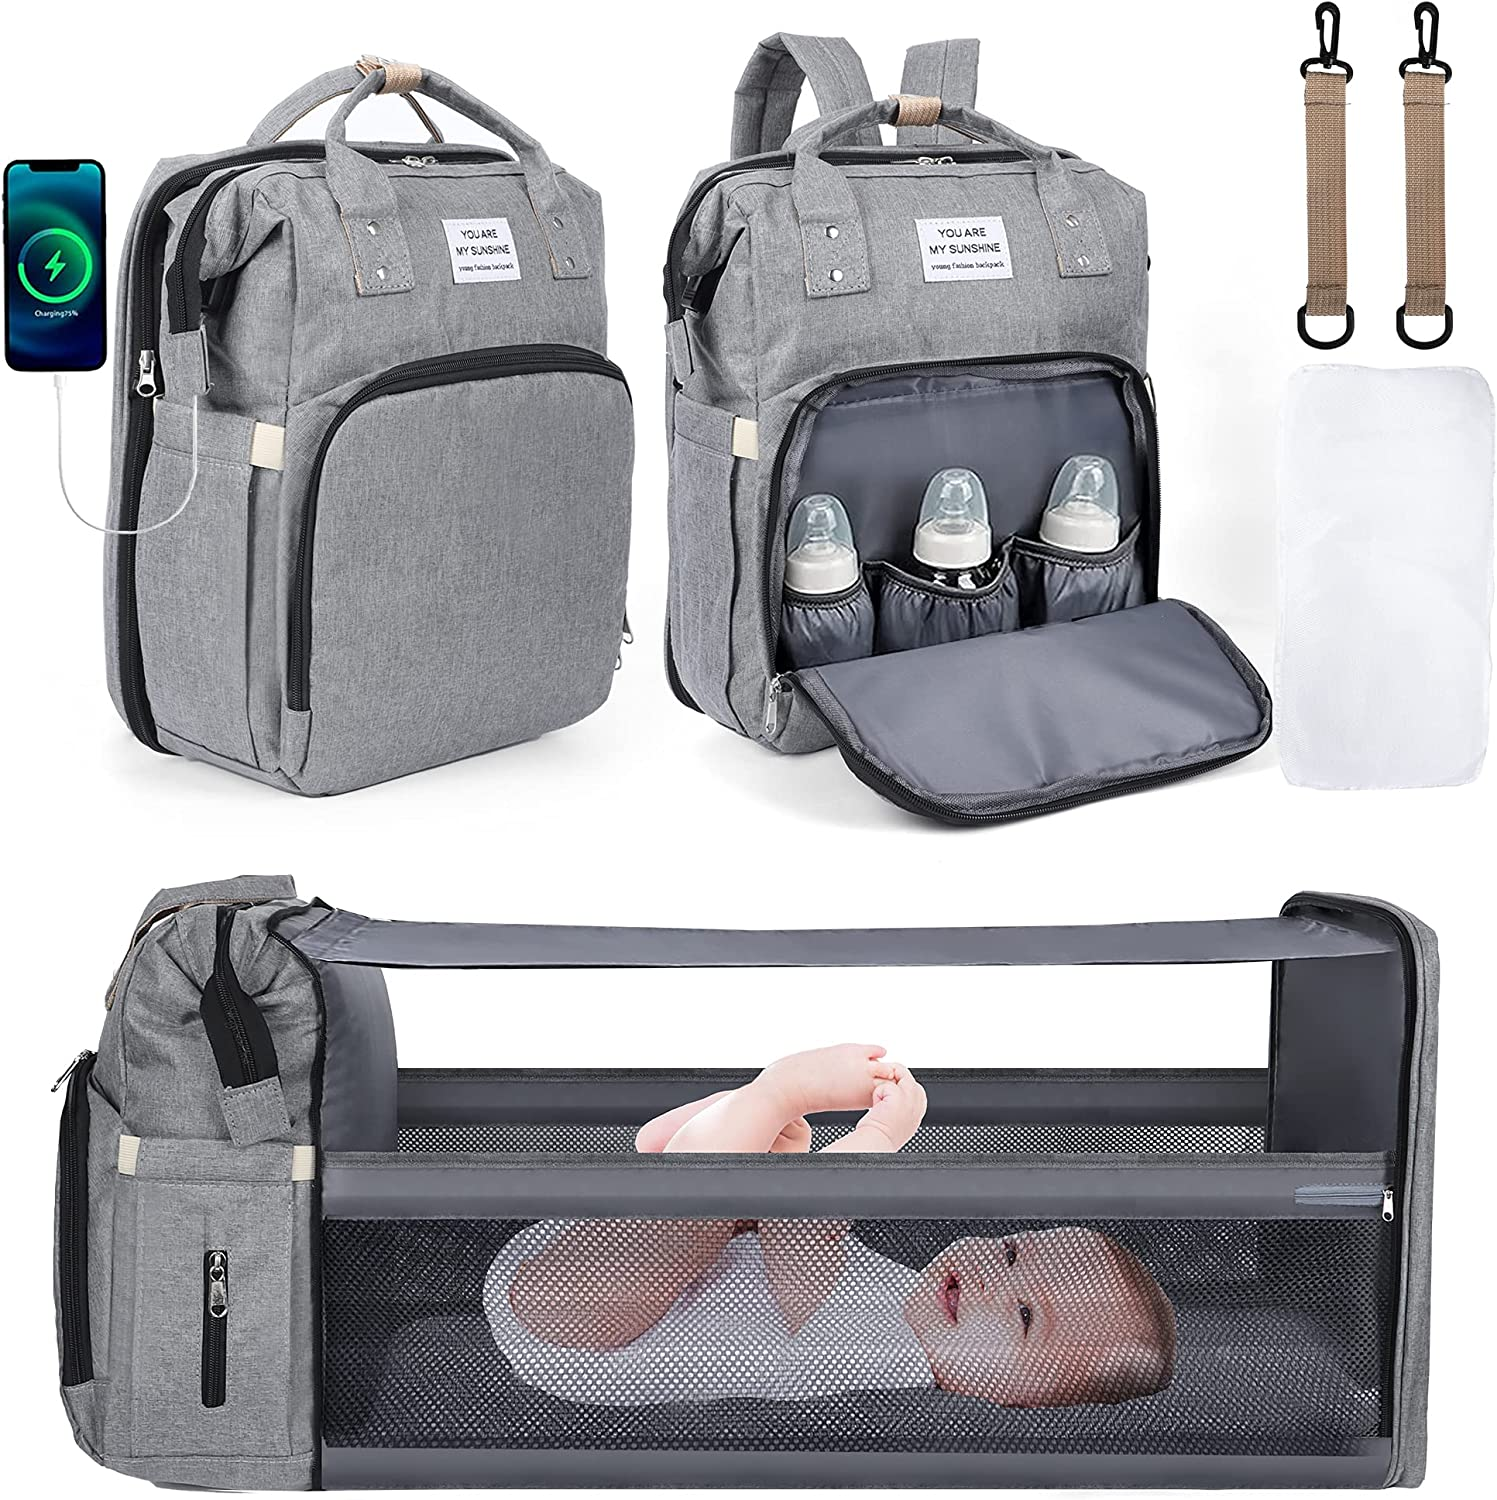 Diaper Bag Backpack, Baby Bag with Changing Station, Baby Must Haves, Diaper Bags for Boy & Girl, Travel Back Pack with Bassinet Bed Mat Pad, Portable Stroller Straps Large Capacity (Grey)